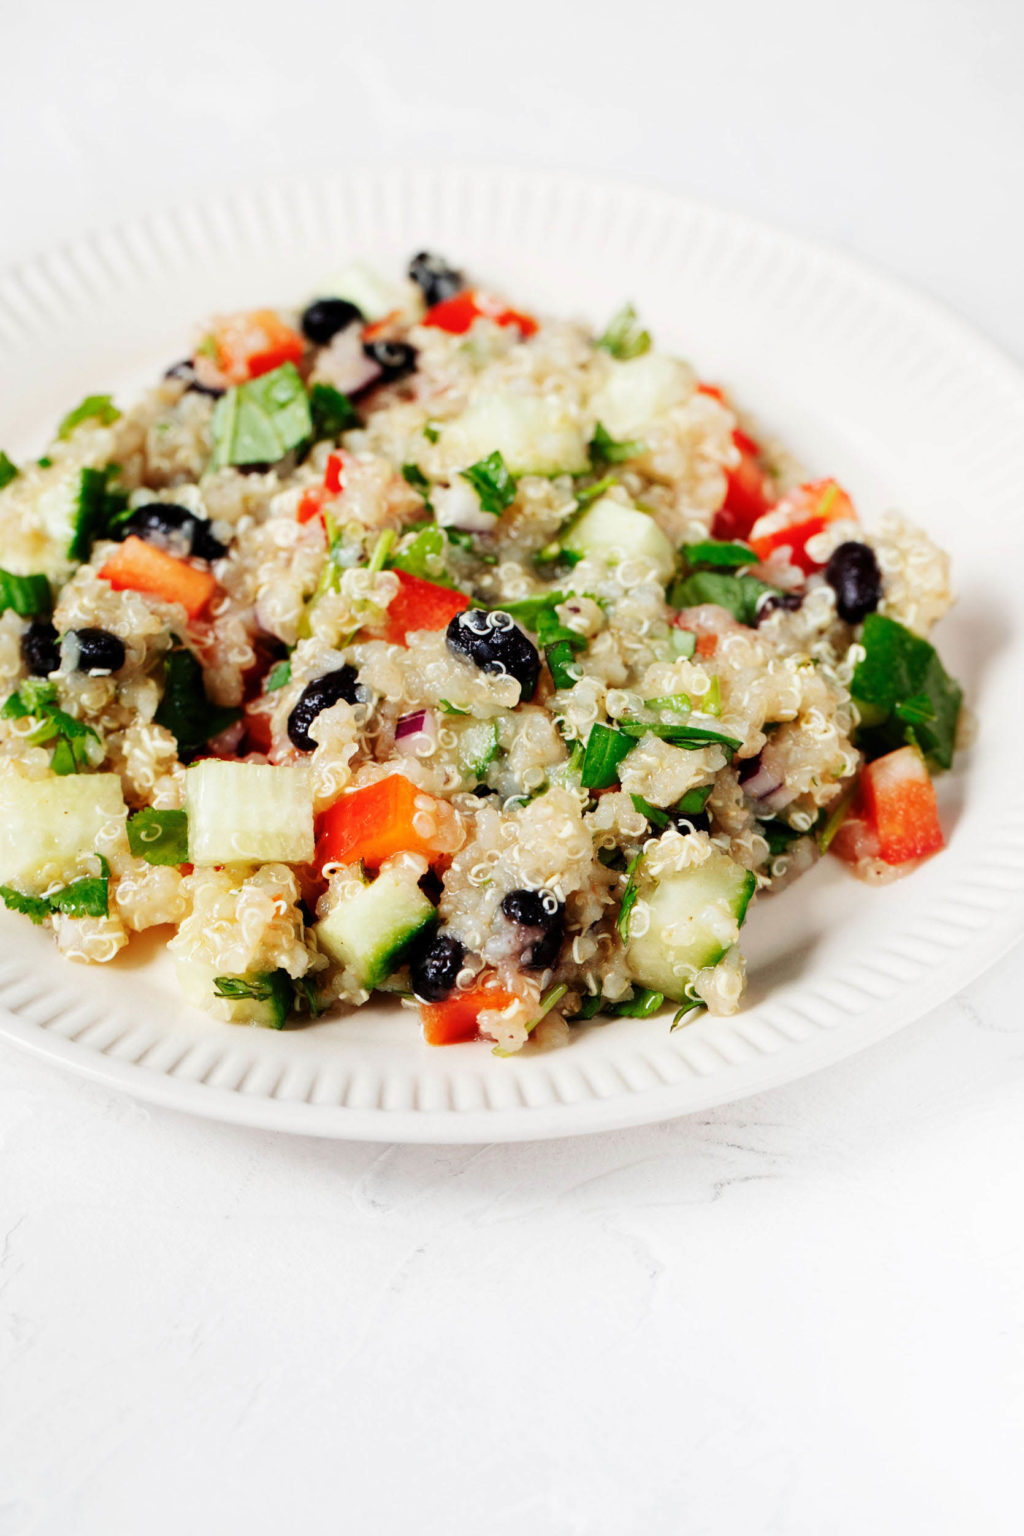 An angled image of a colorful quinoa black bean salad, which has been piled onto a fluted, white ceramic plate. The plate is on a white surface.